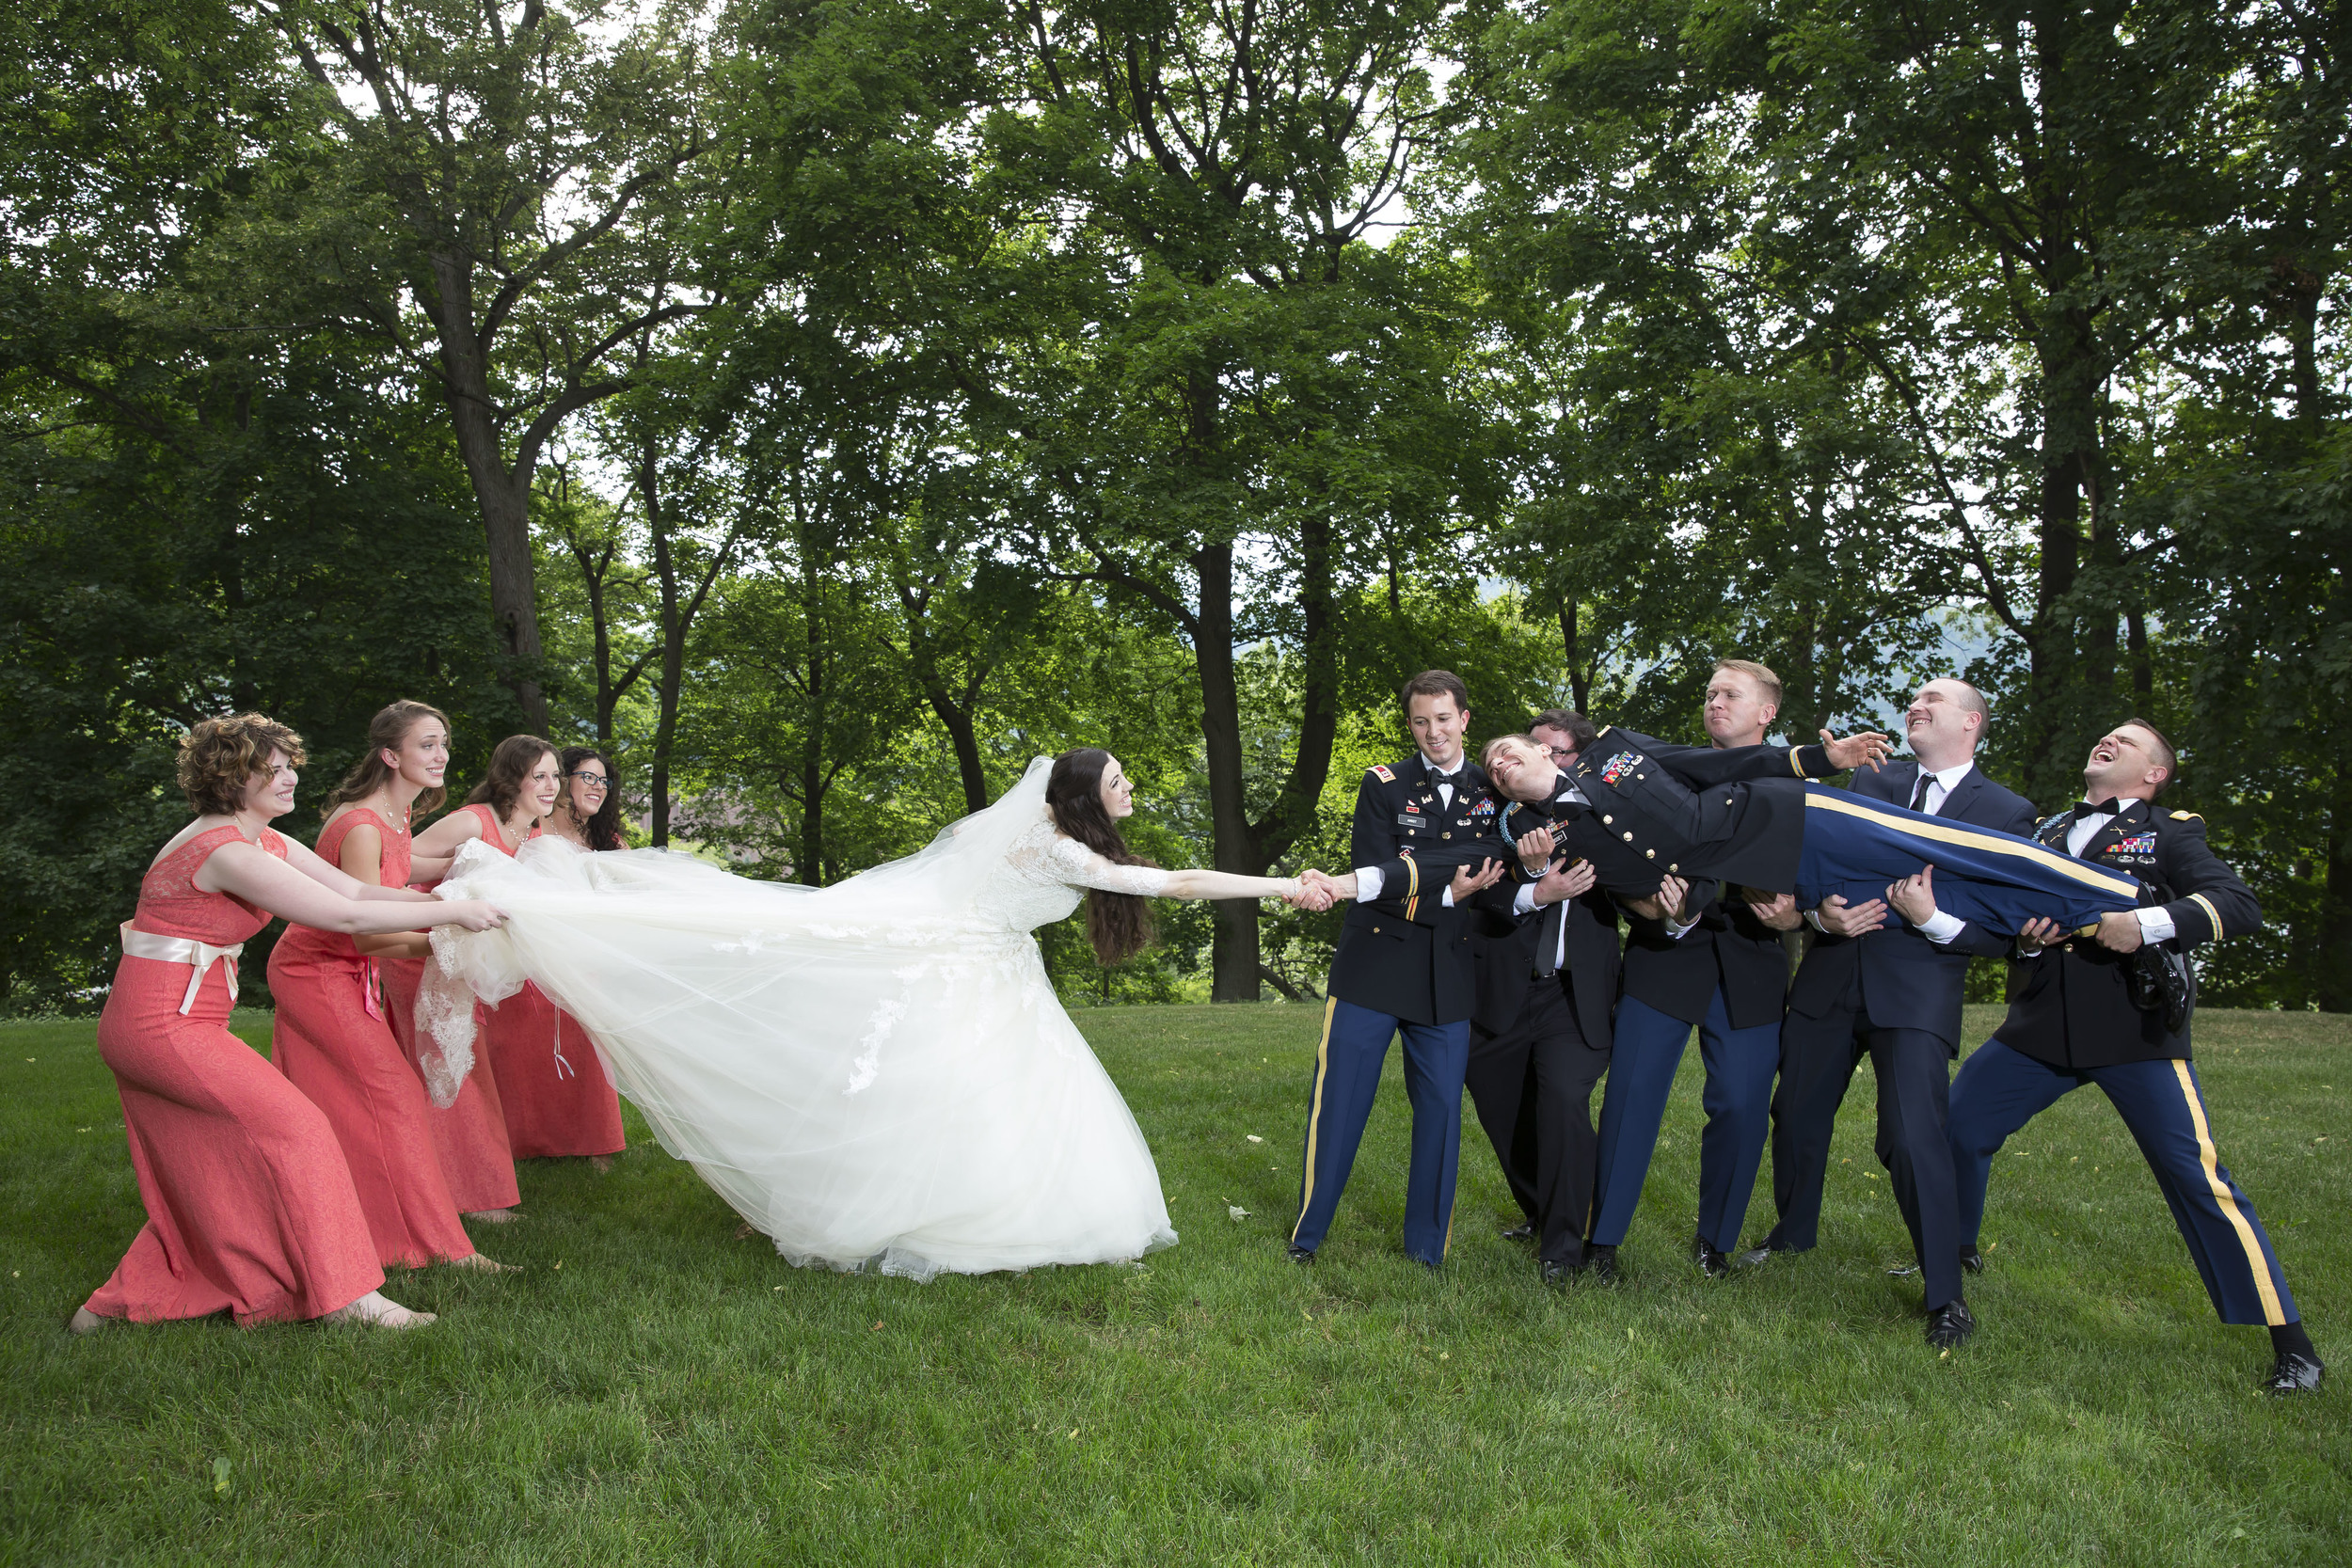 West_Point_Wedding_Photographer_NY_3036.JPG